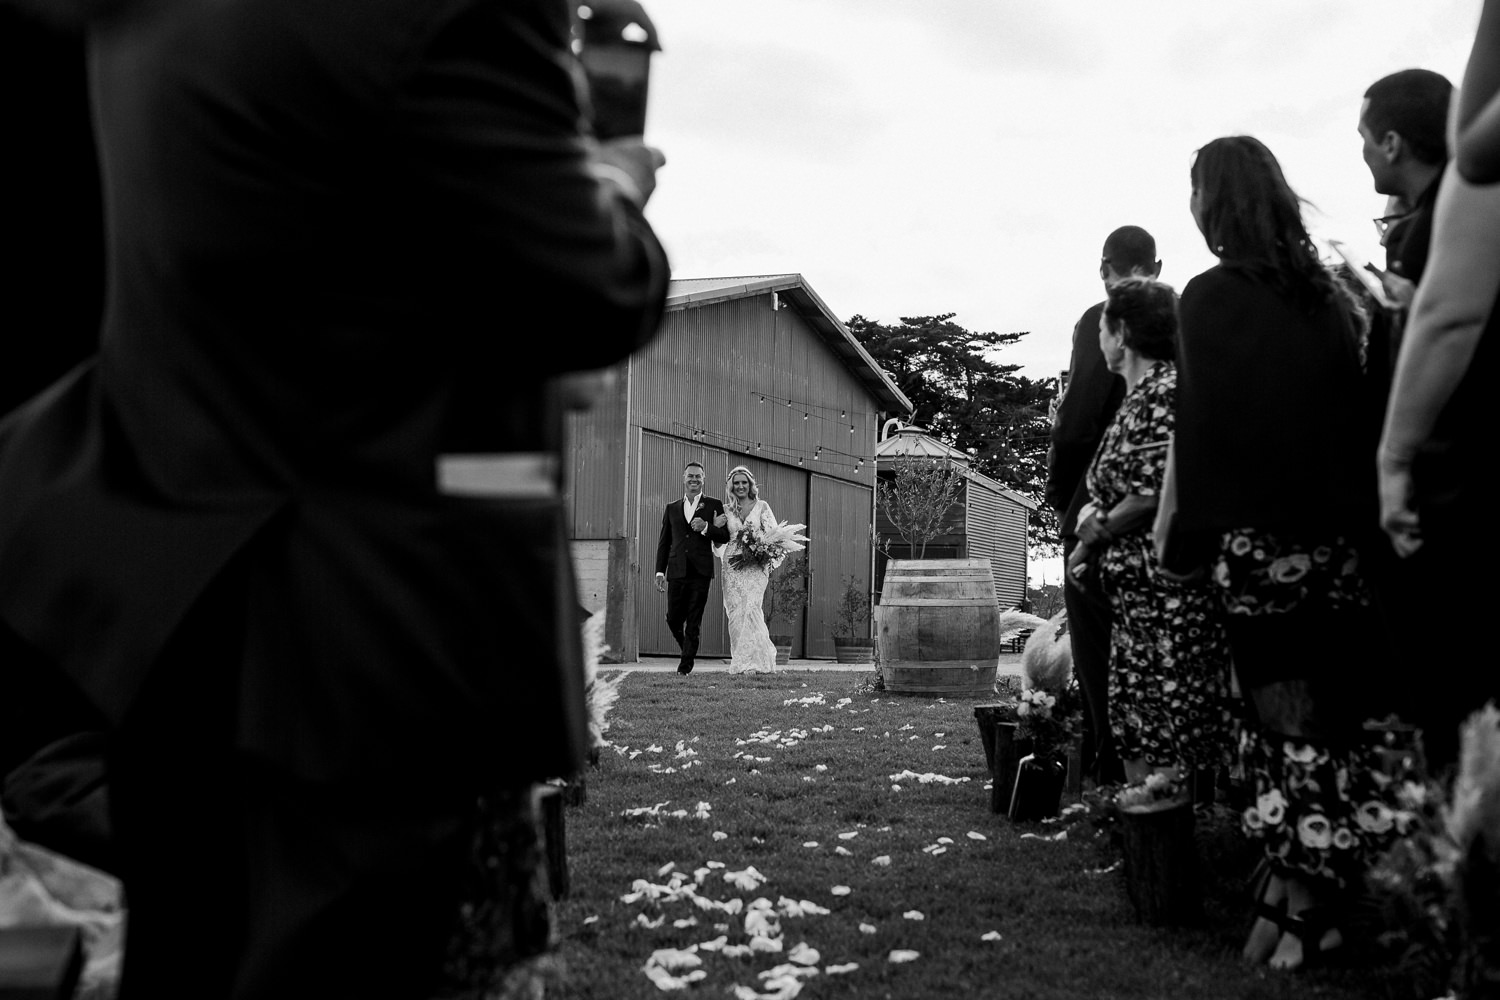 zonzo-estate-yarra-valley-wedding-photographer_0054.jpg